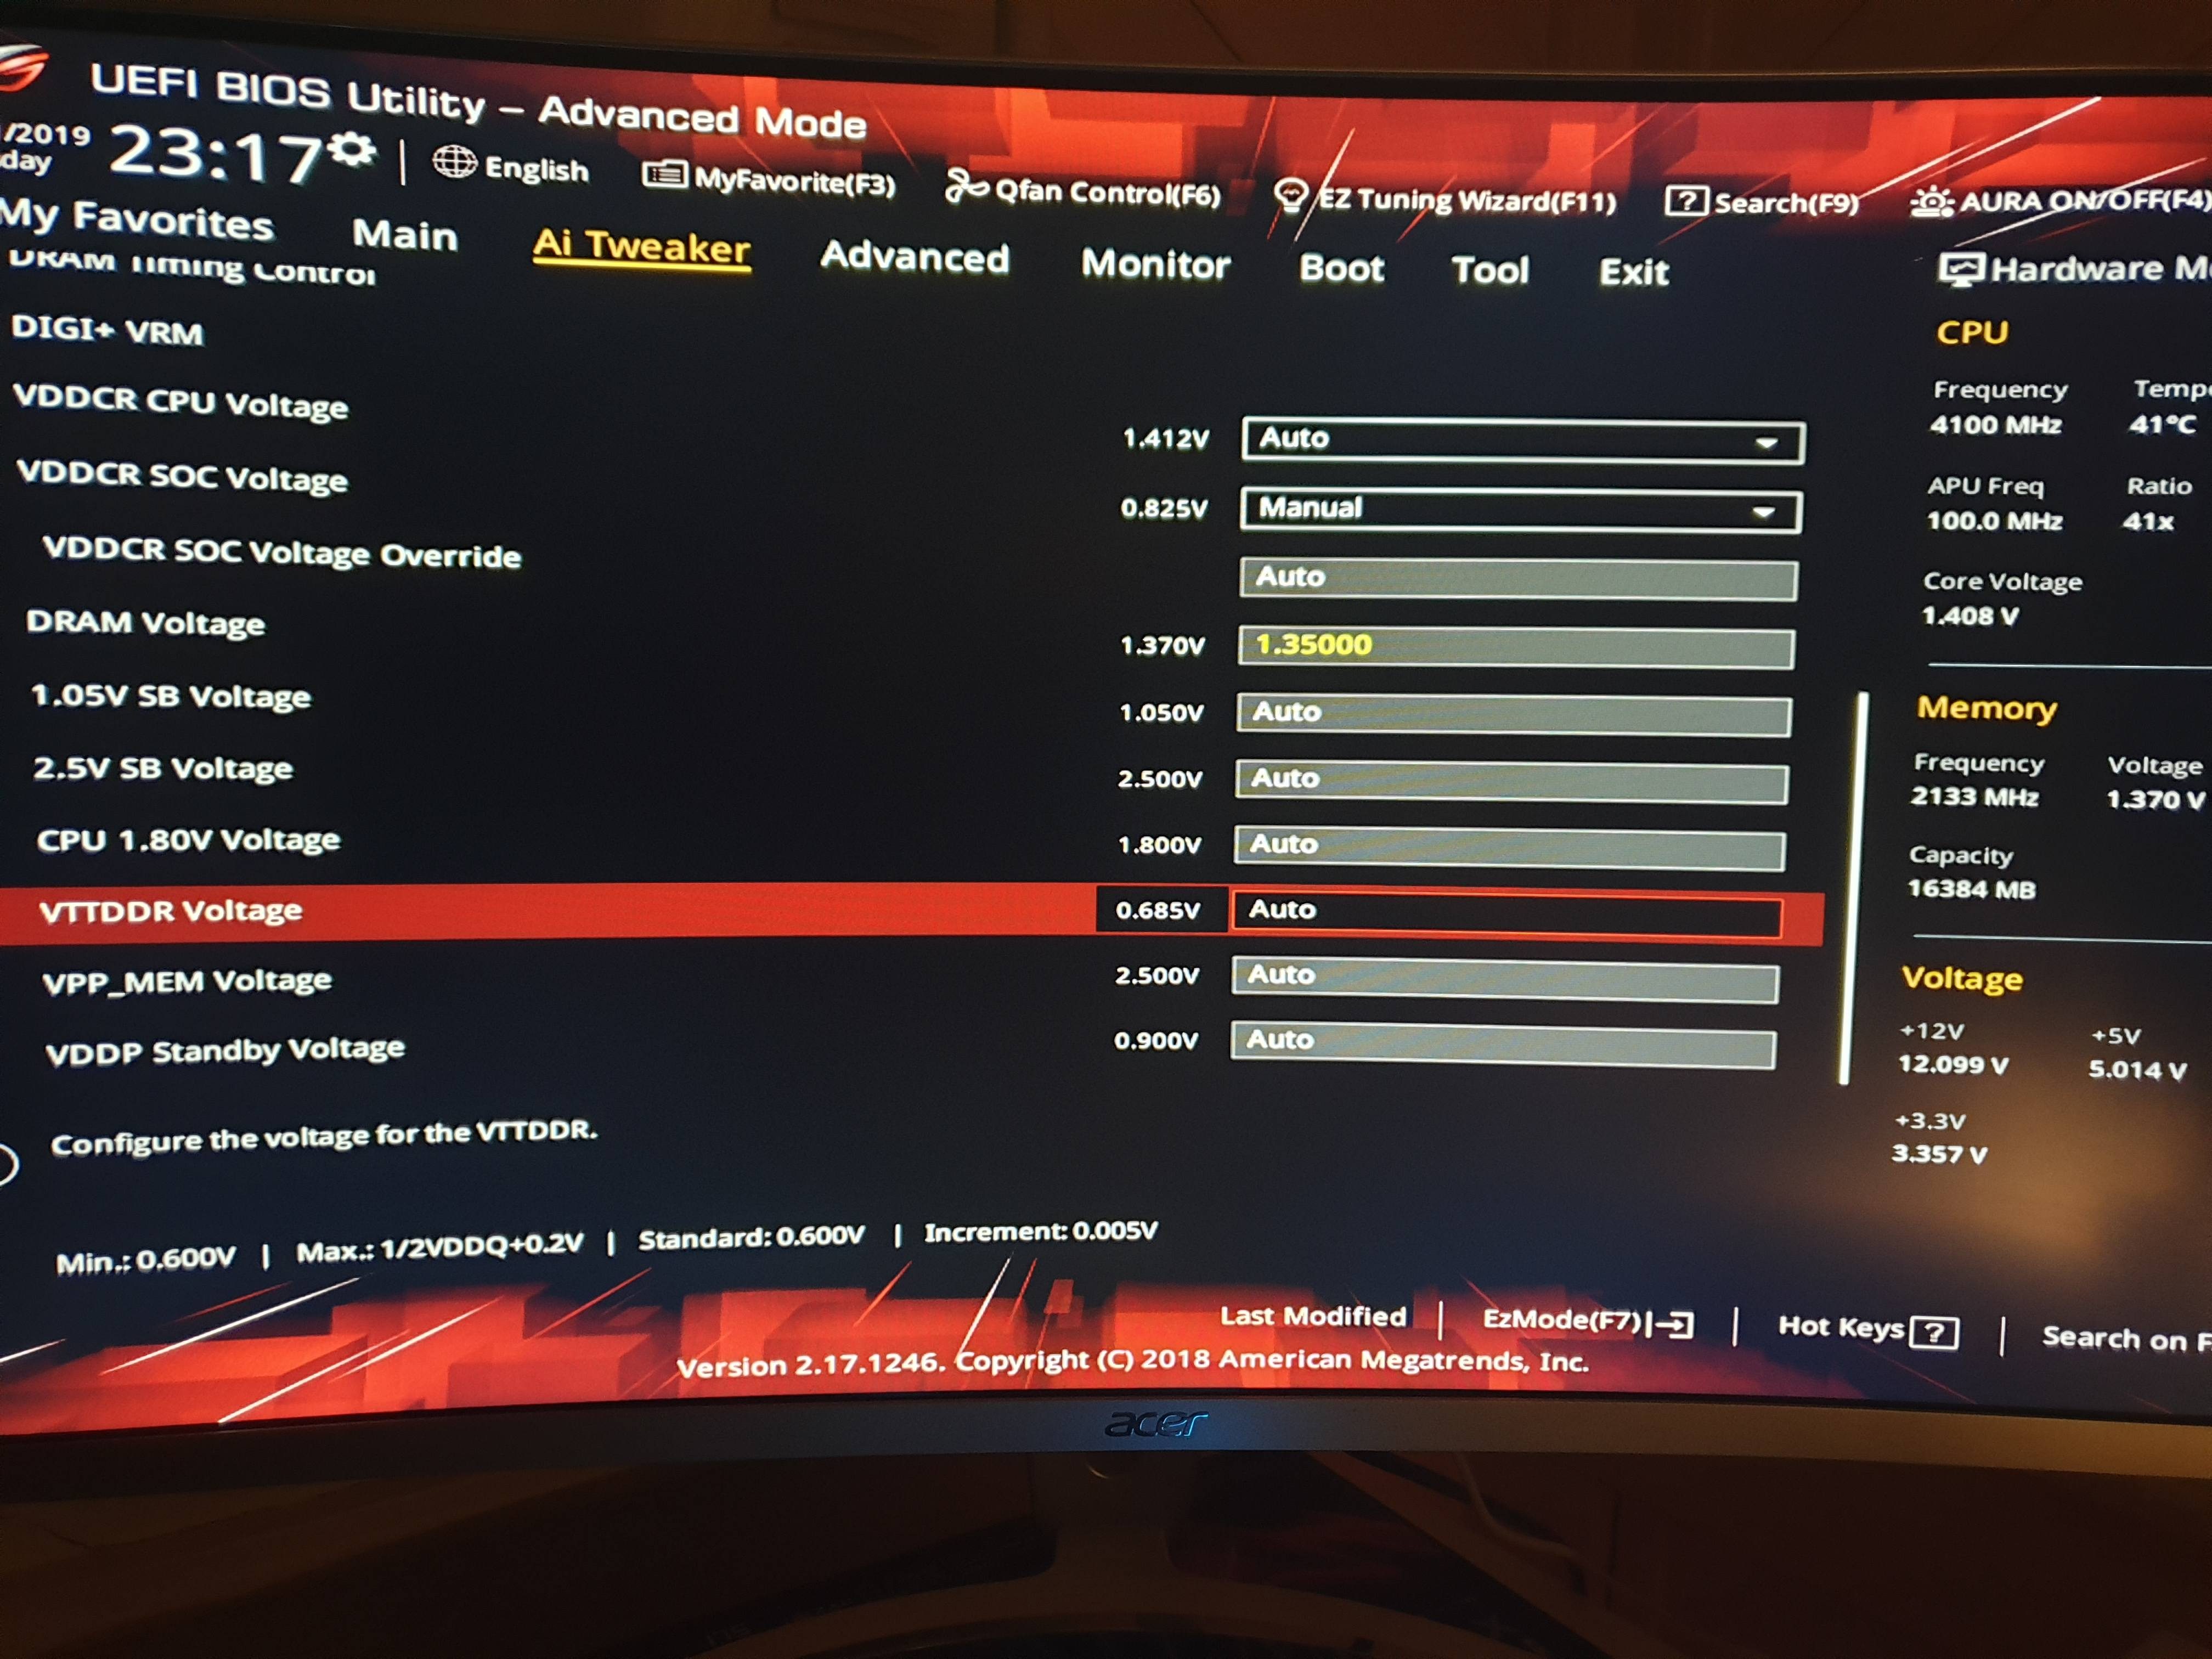 RAM speed on Ryzen 7 2700x - CPUs, Motherboards, and Memory